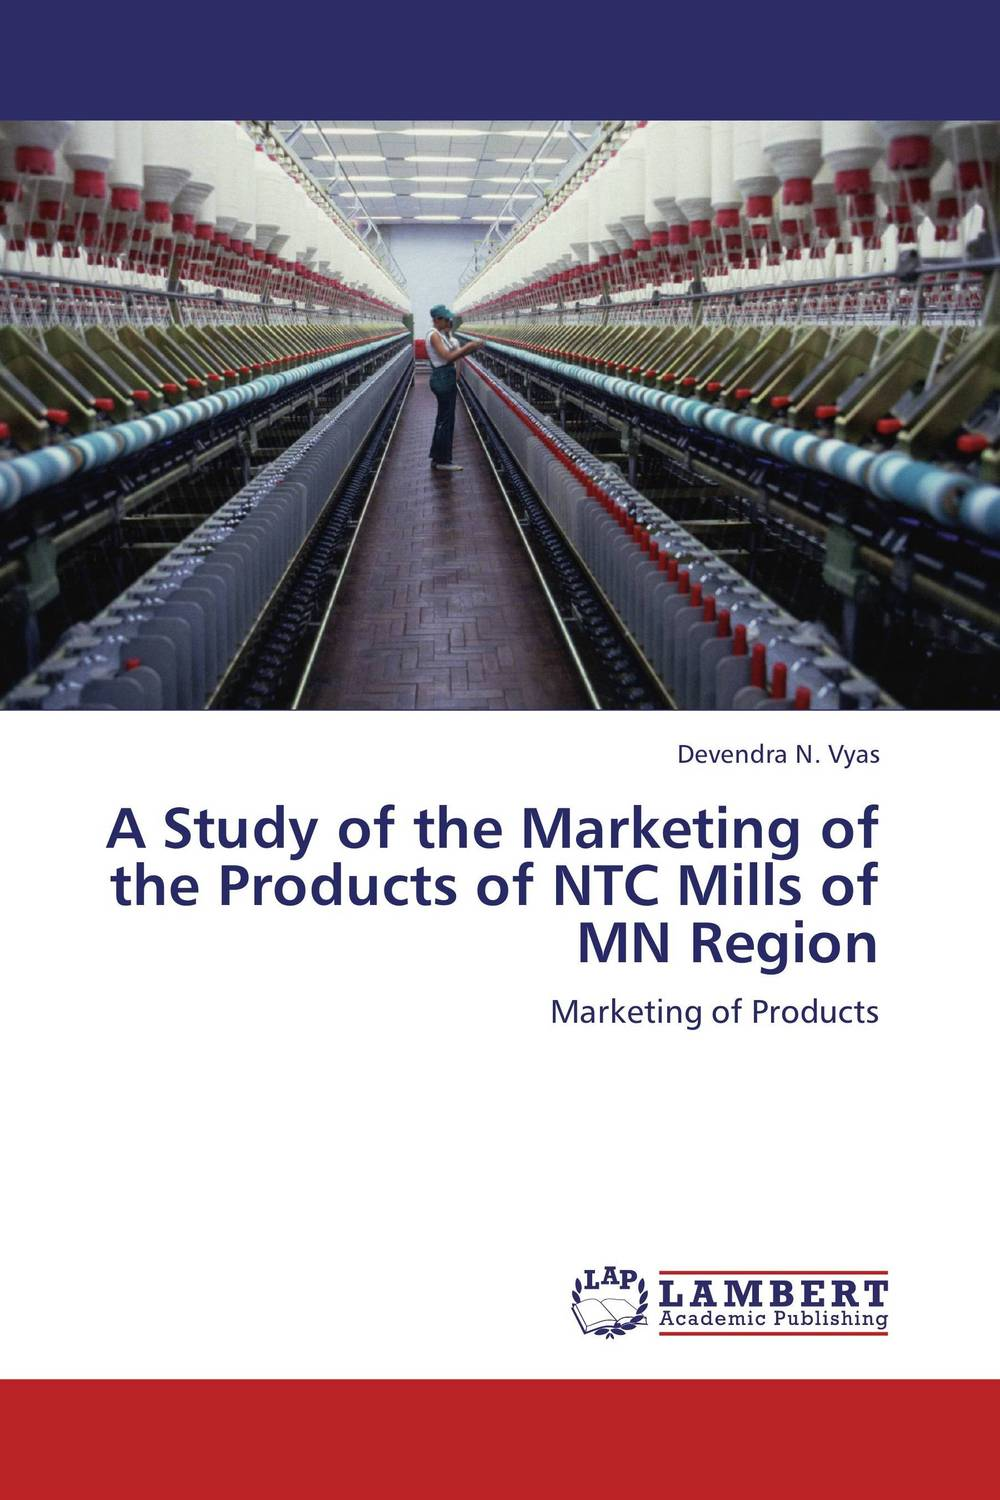 A Study of the Marketing of the Products of NTC Mills of MN Region mark jeffery data driven marketing the 15 metrics everyone in marketing should know